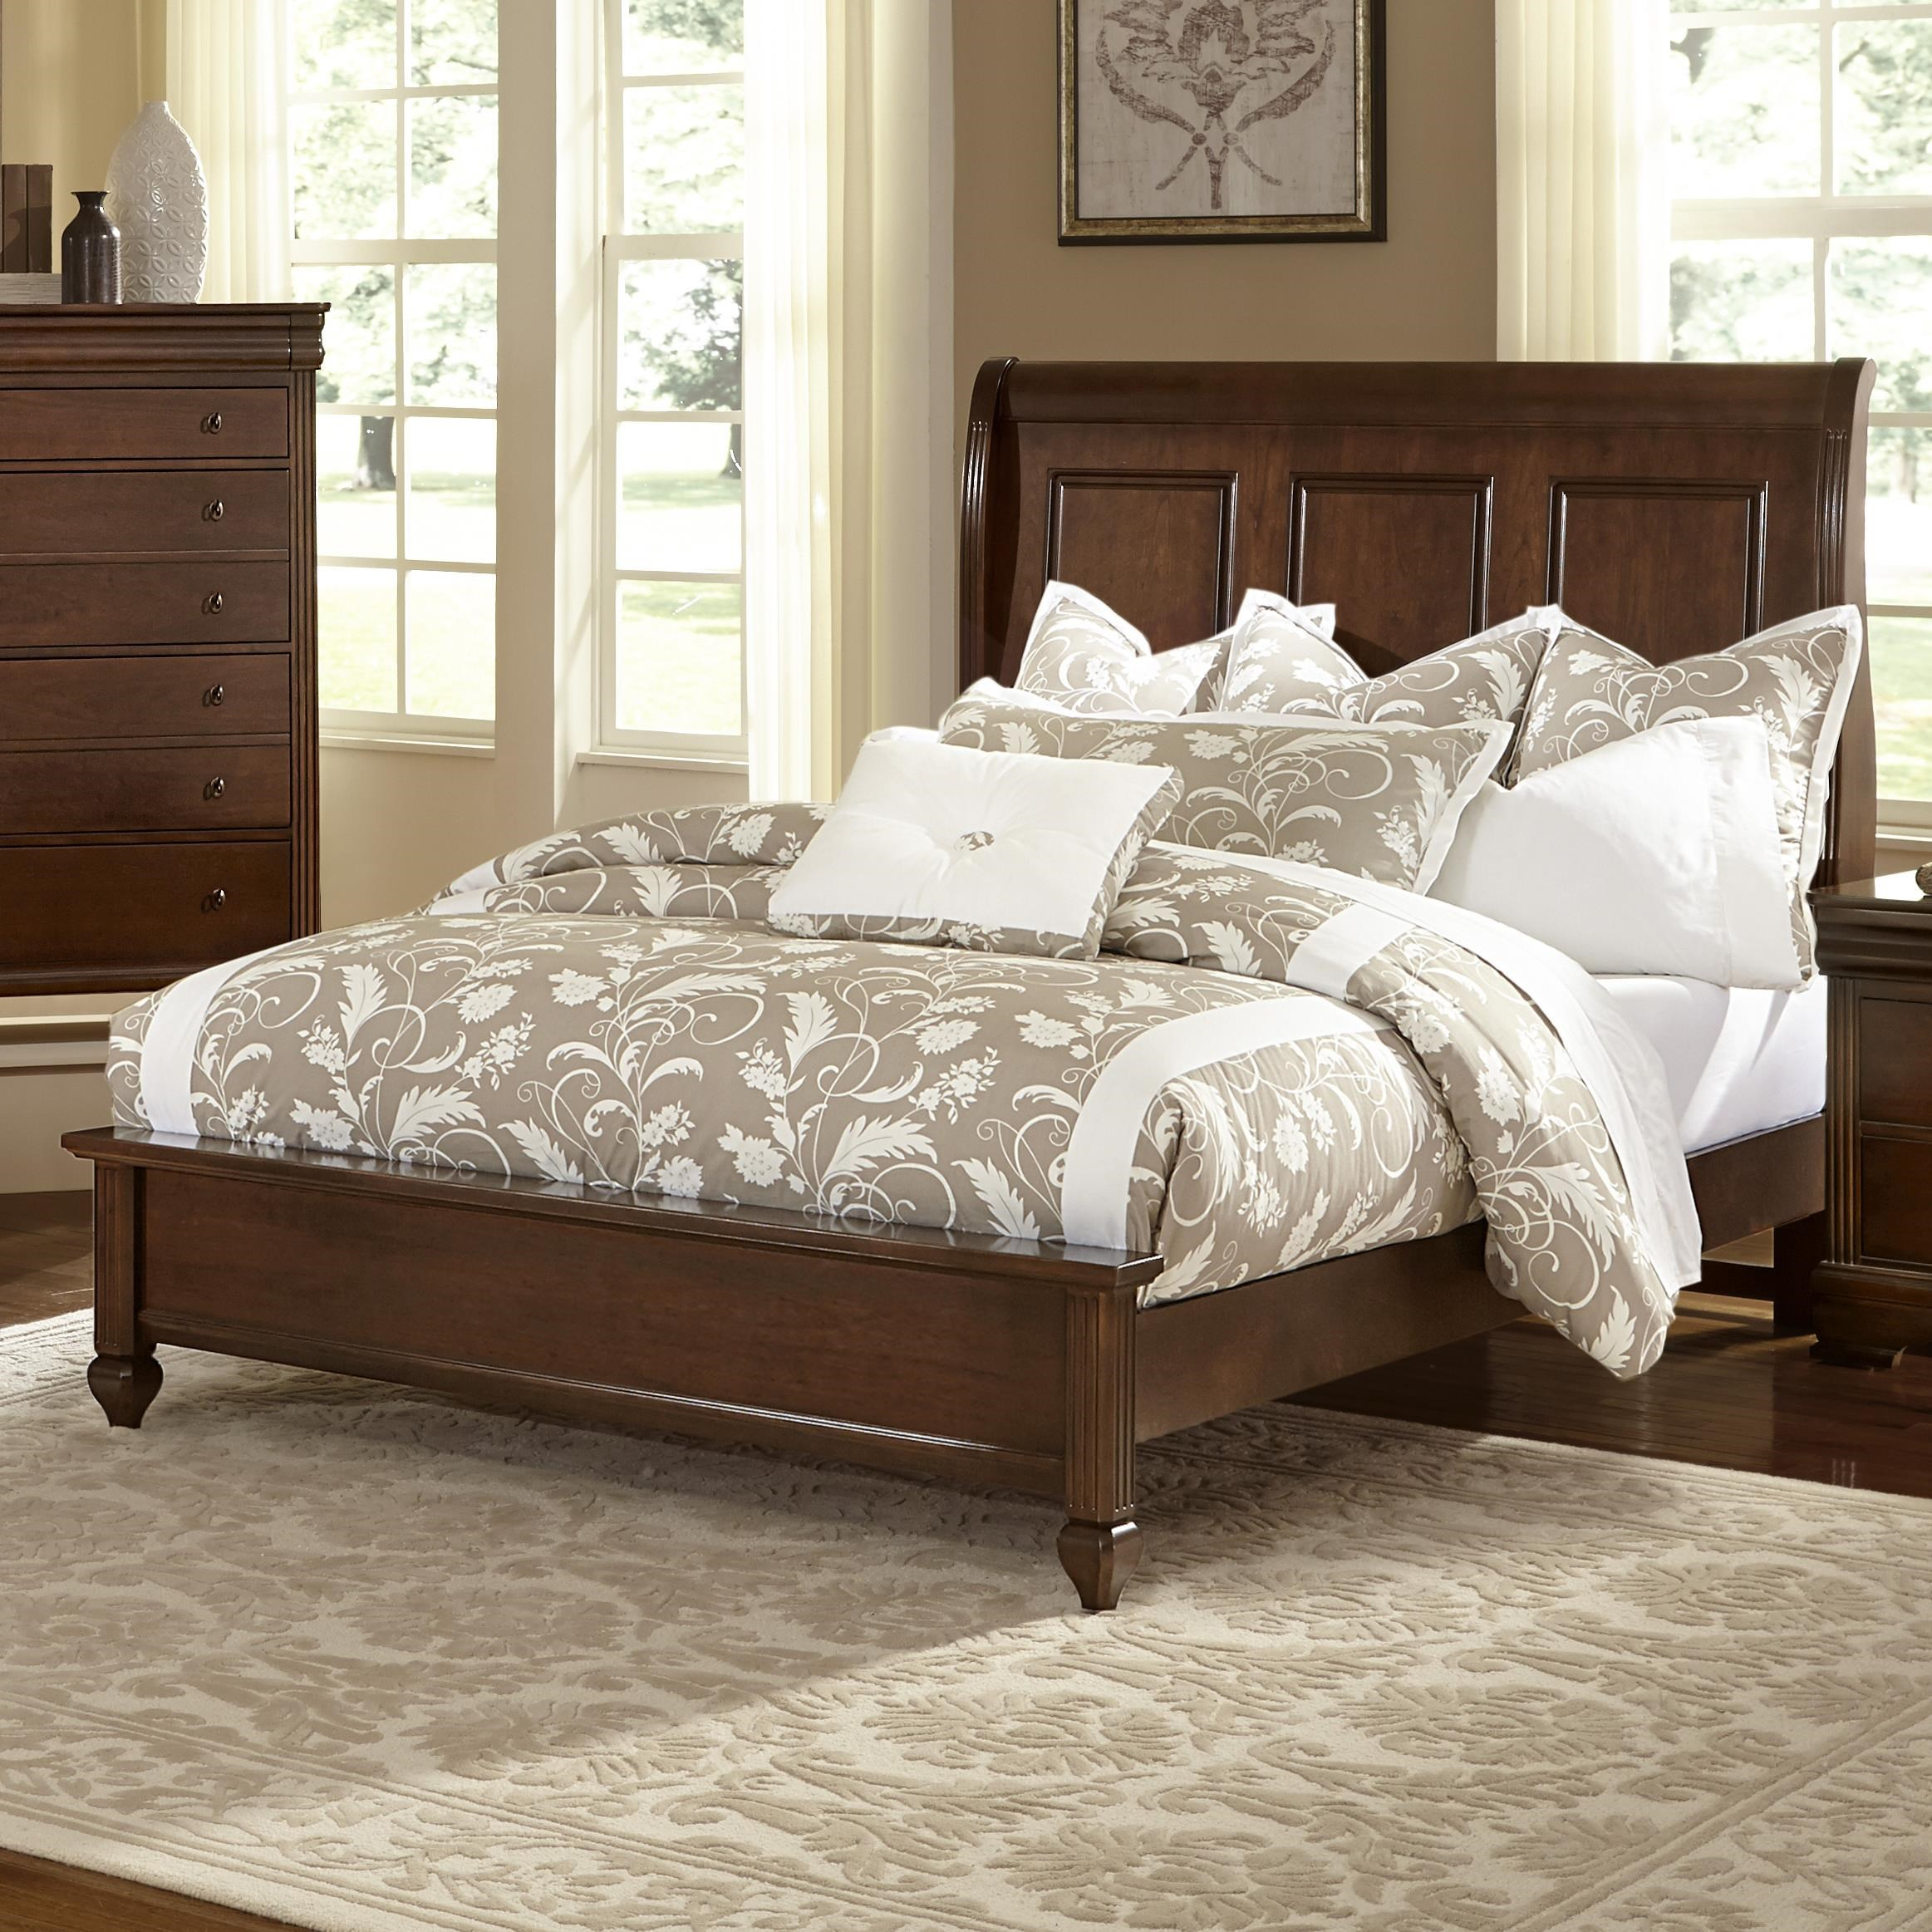 Sleigh Bed Headboard French Market Queen Bed W Sleigh Headboard Low Profile Footboard By Vaughan Bassett At Turk Furniture